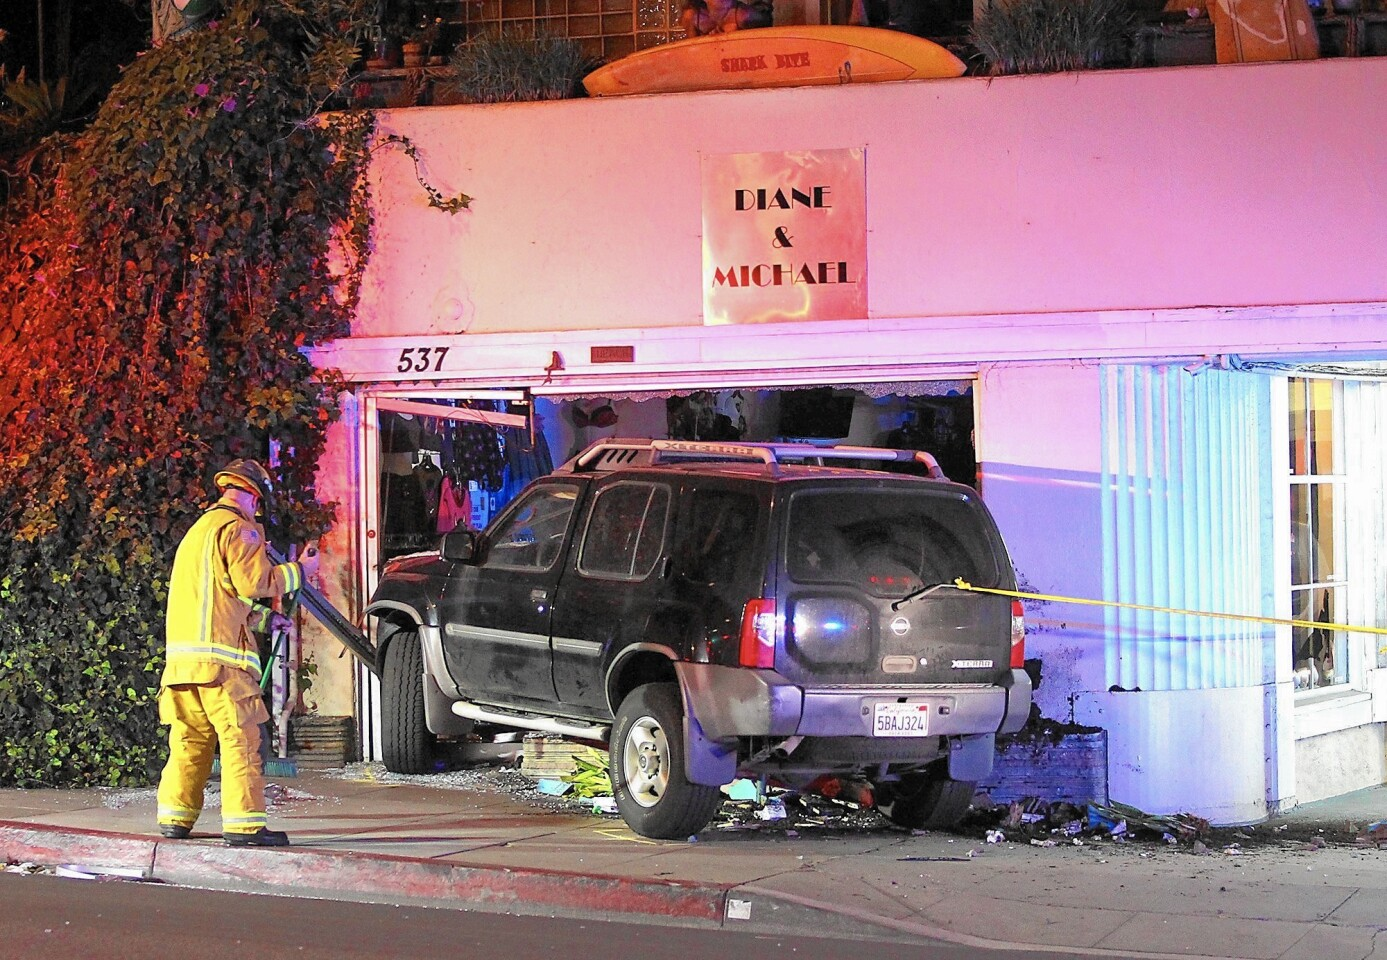 A Laguna Beach firefighter sweeps up debris where a Nissan X-Terra crashed through the front door and window display at the Diane and Michael Gallery at 537 S. Coast Hwy. just after 10 p.m. Friday.